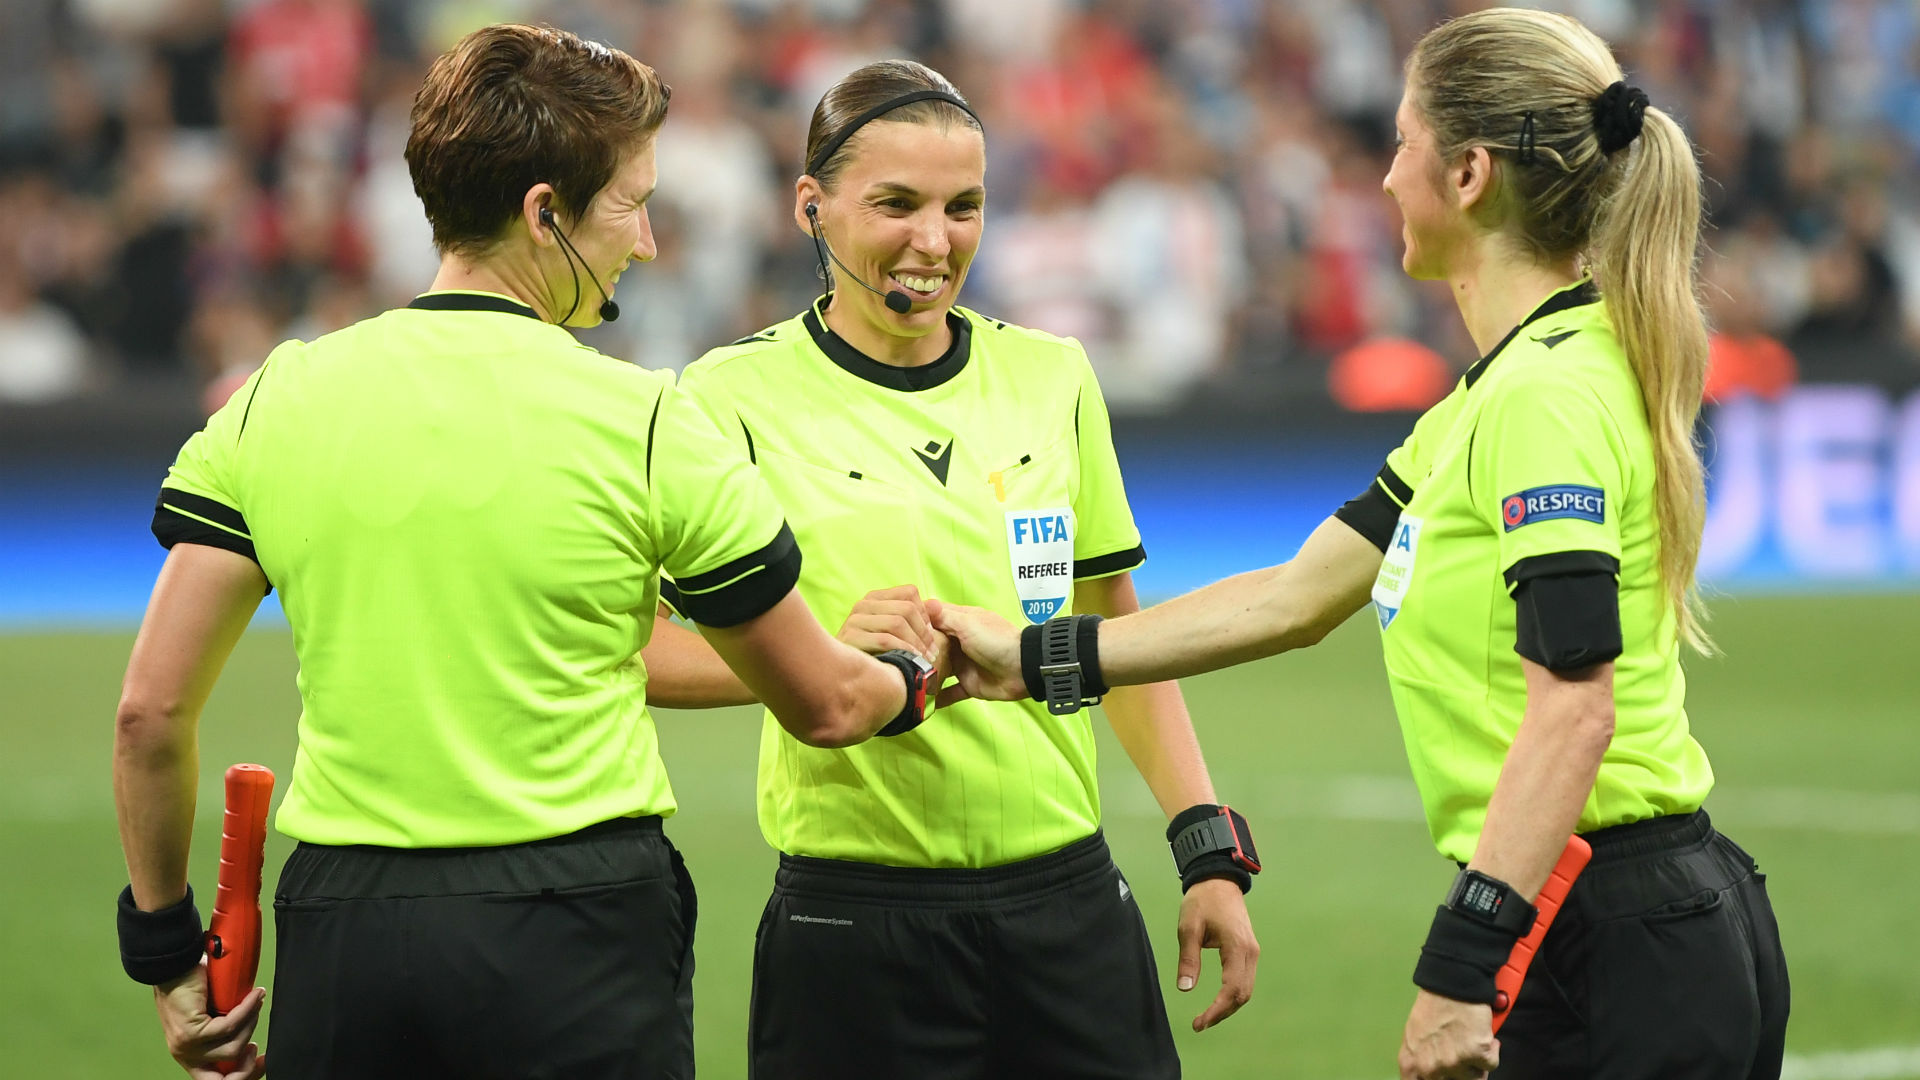 Klopp applauds performance of referee Stephanie Frappart and UEFA Super Cup officials